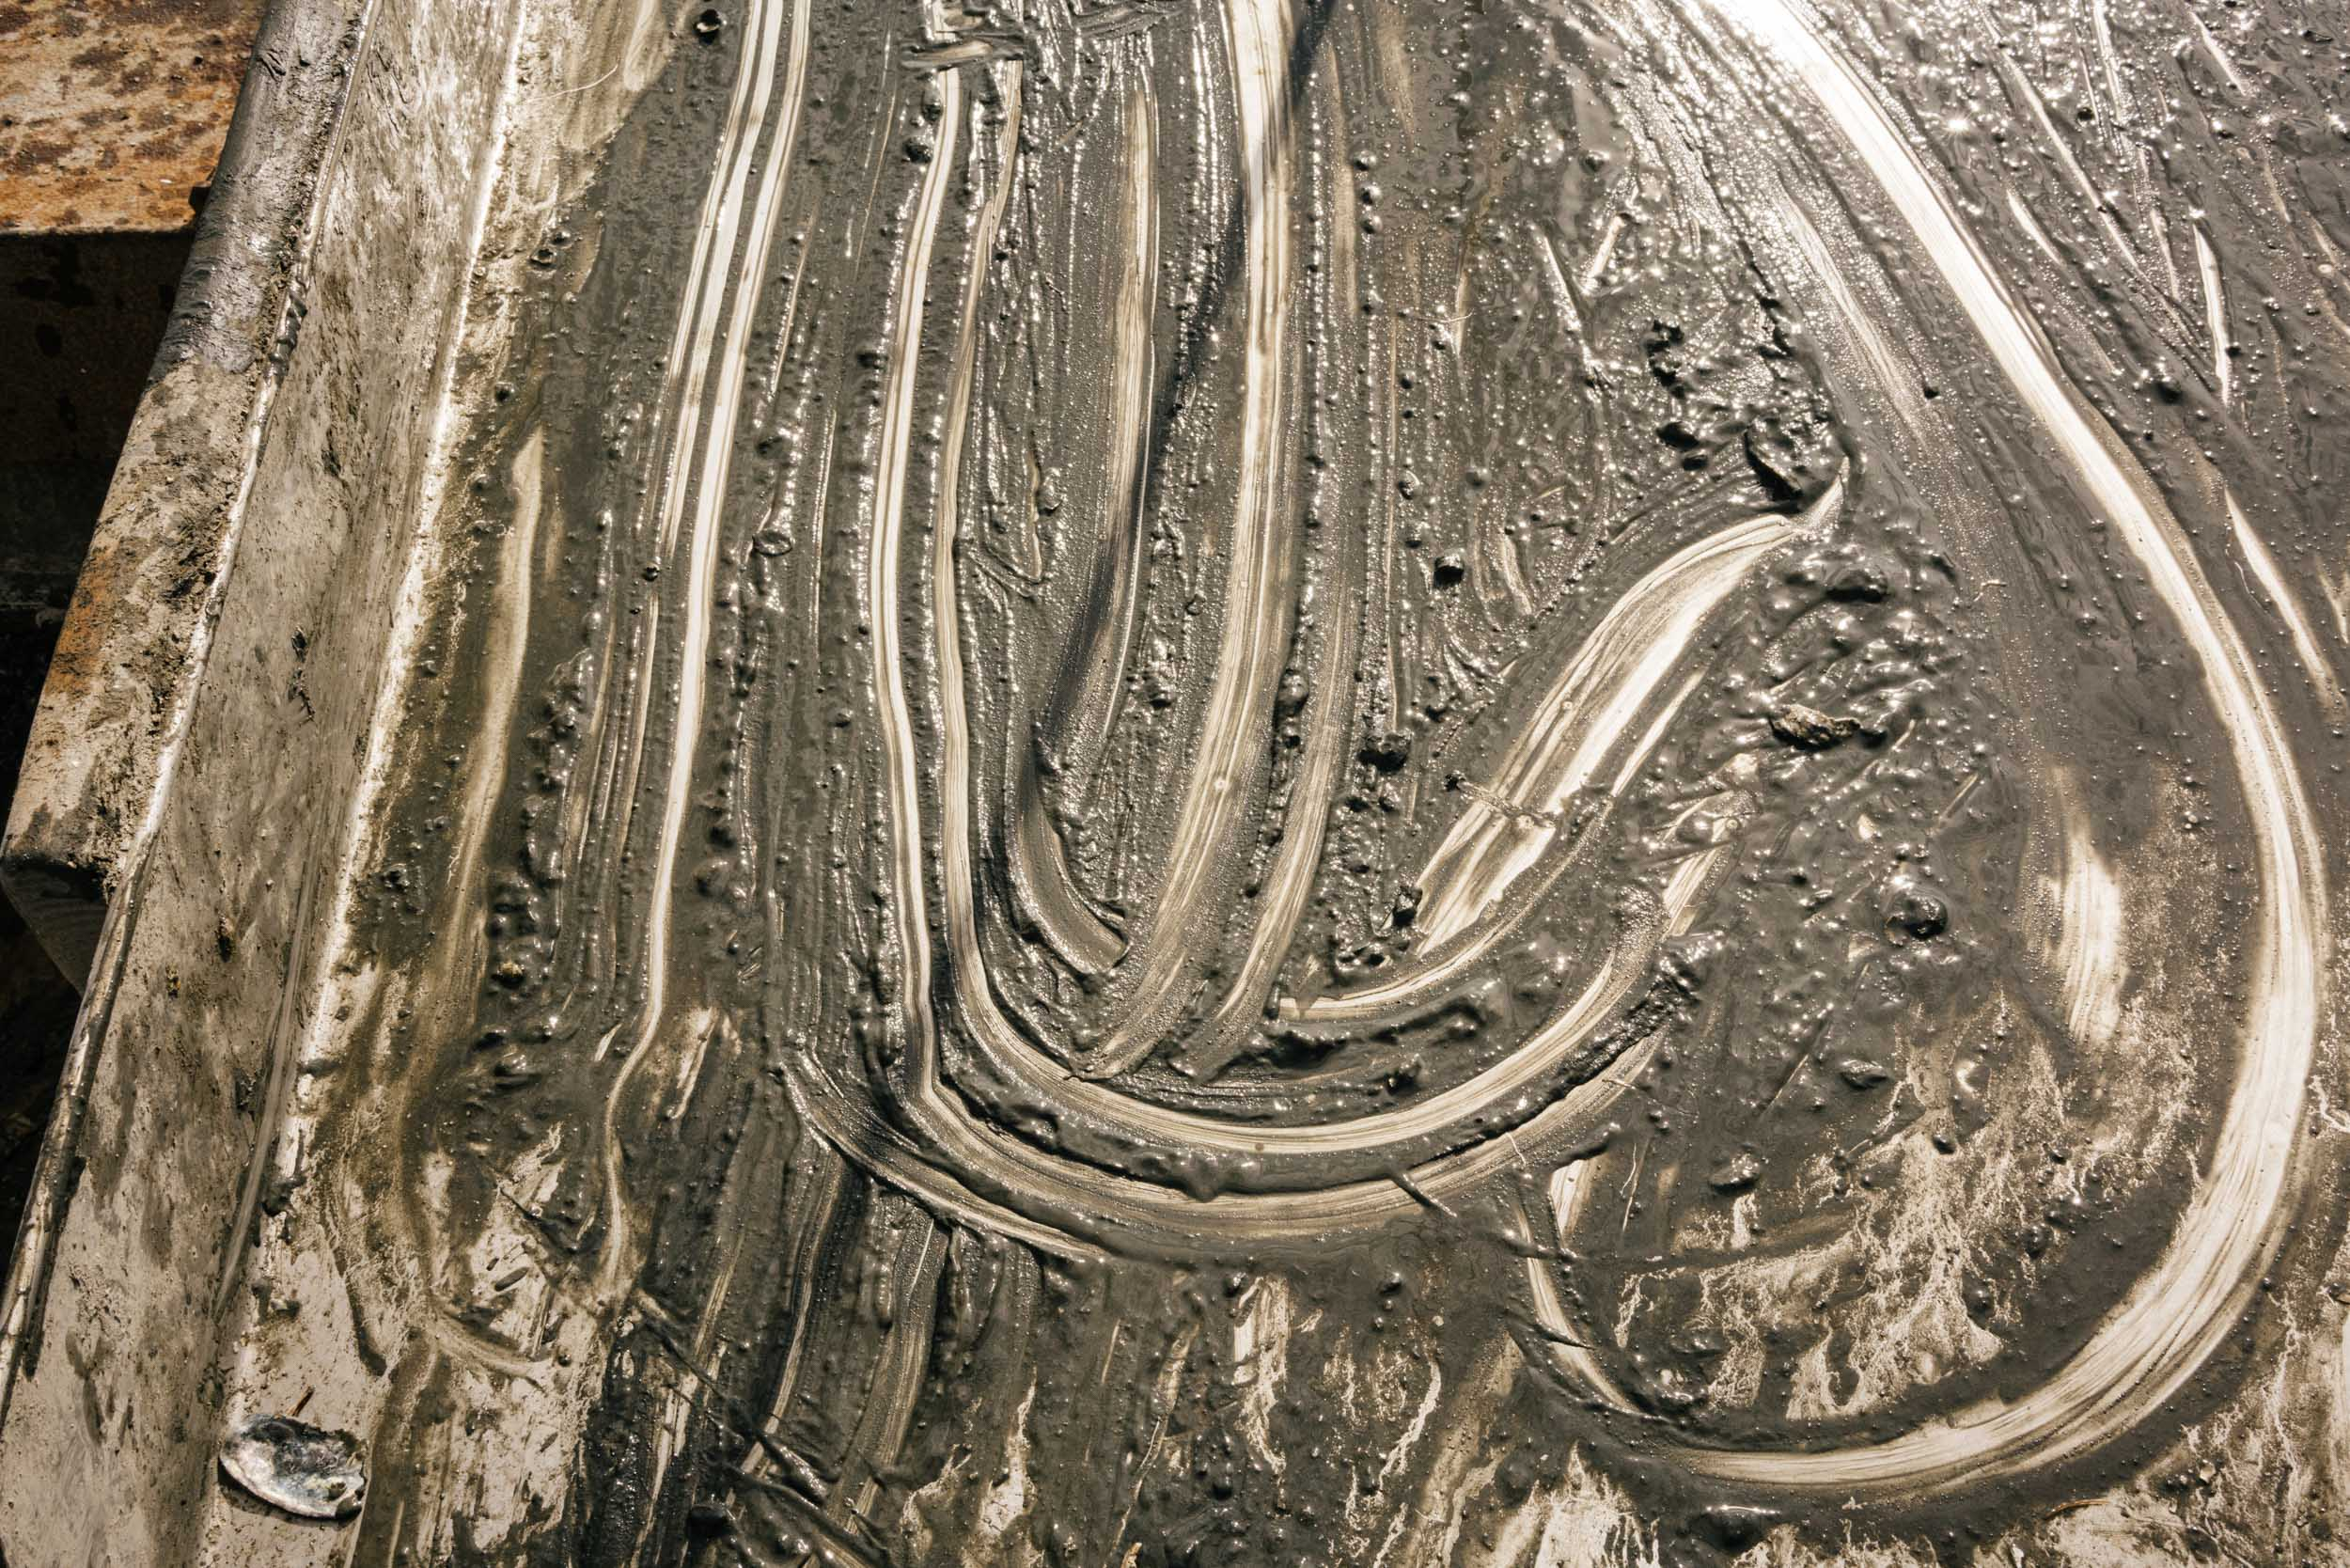 mud streaks on metal table